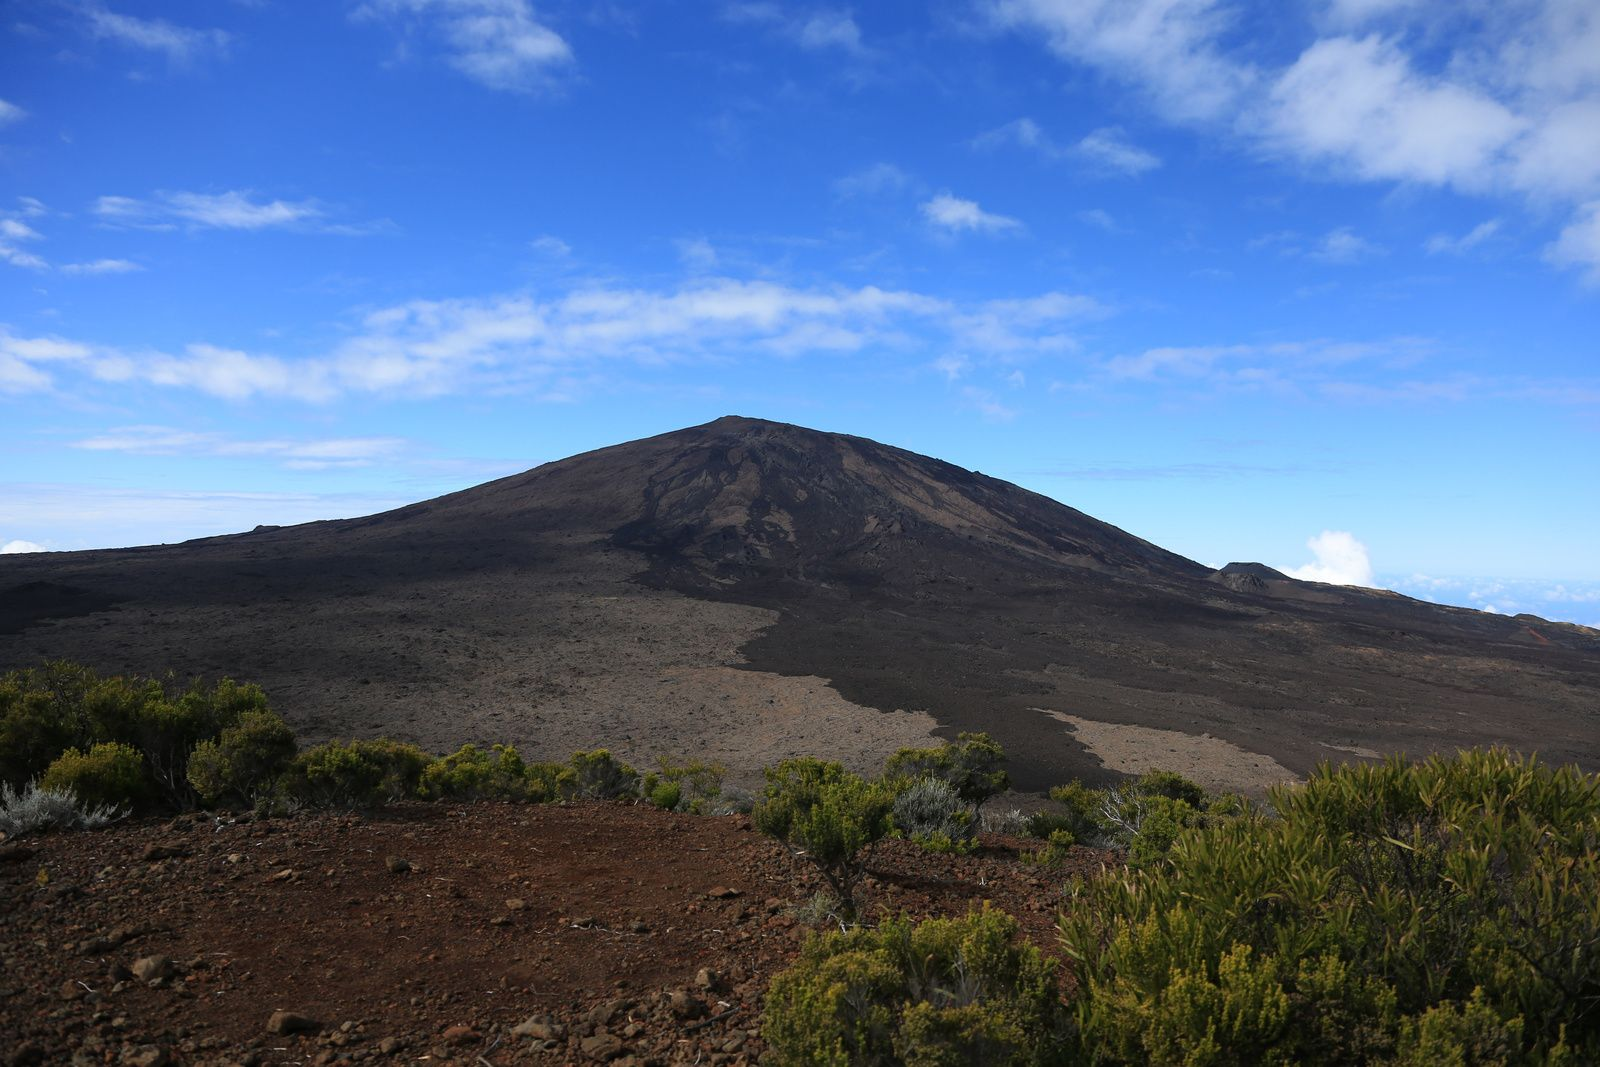 Le Piton de la Fournaise, seen from the Bert trail - photo © Bernard Duyck / June 2017